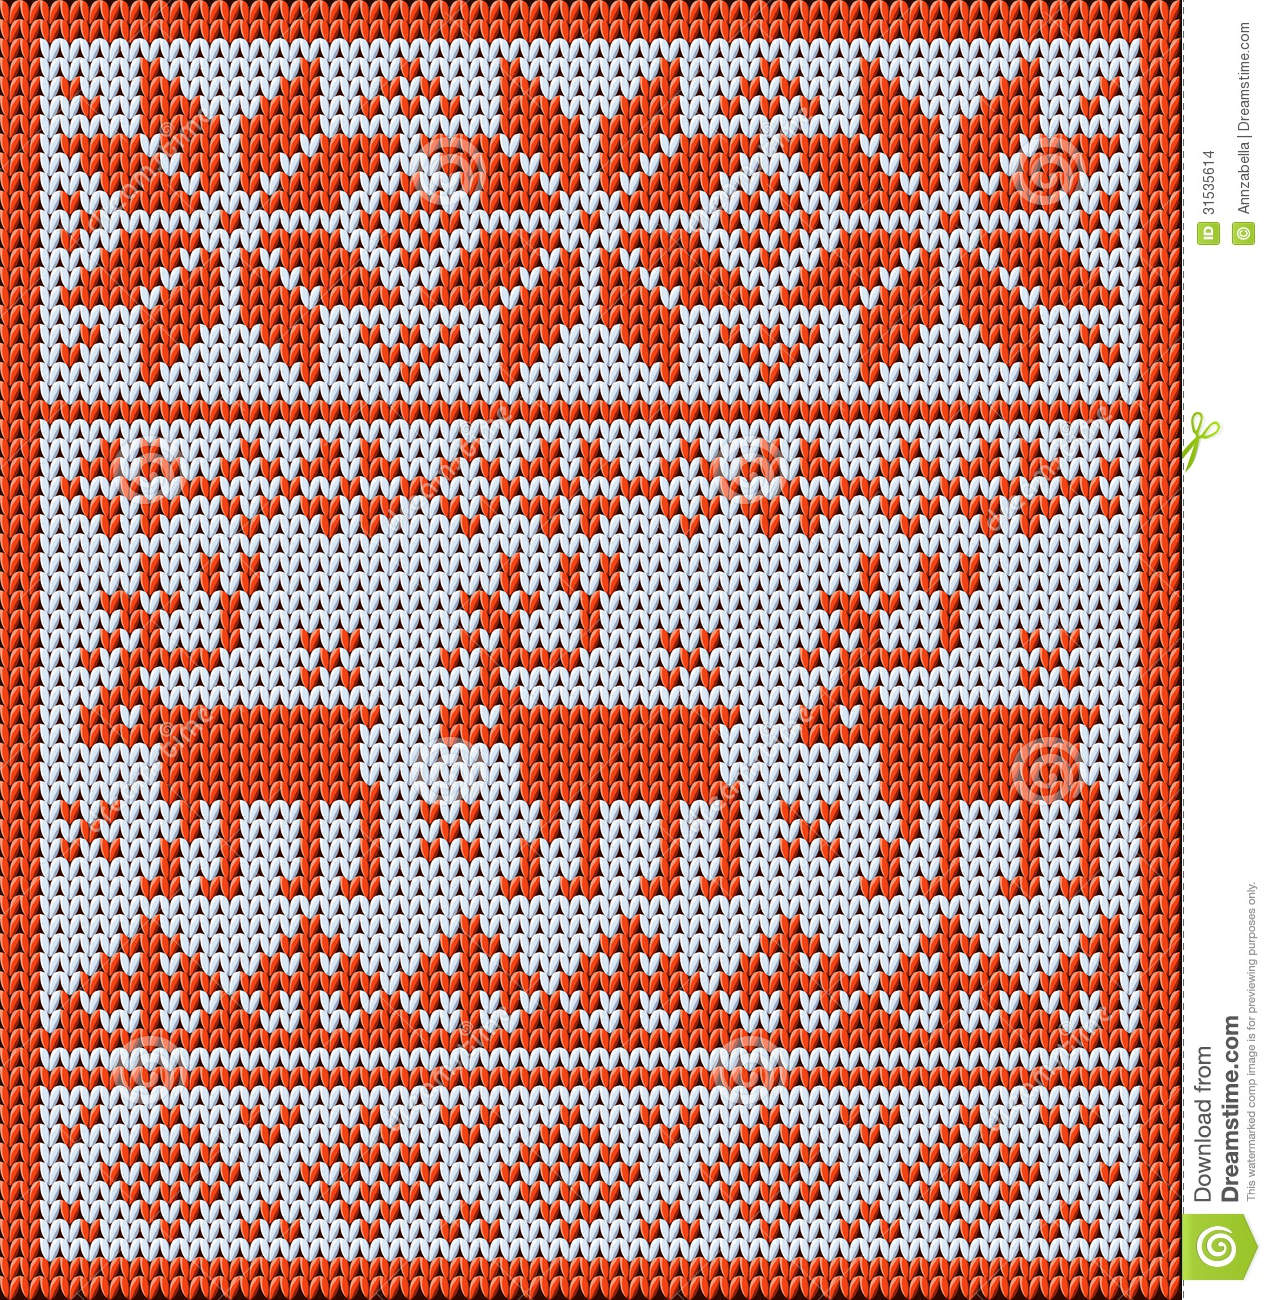 Jacquard Knitting Patterns : Knitted Pattern With Reindeer And Jacquard Flowers Stock Images - Image: 3153...